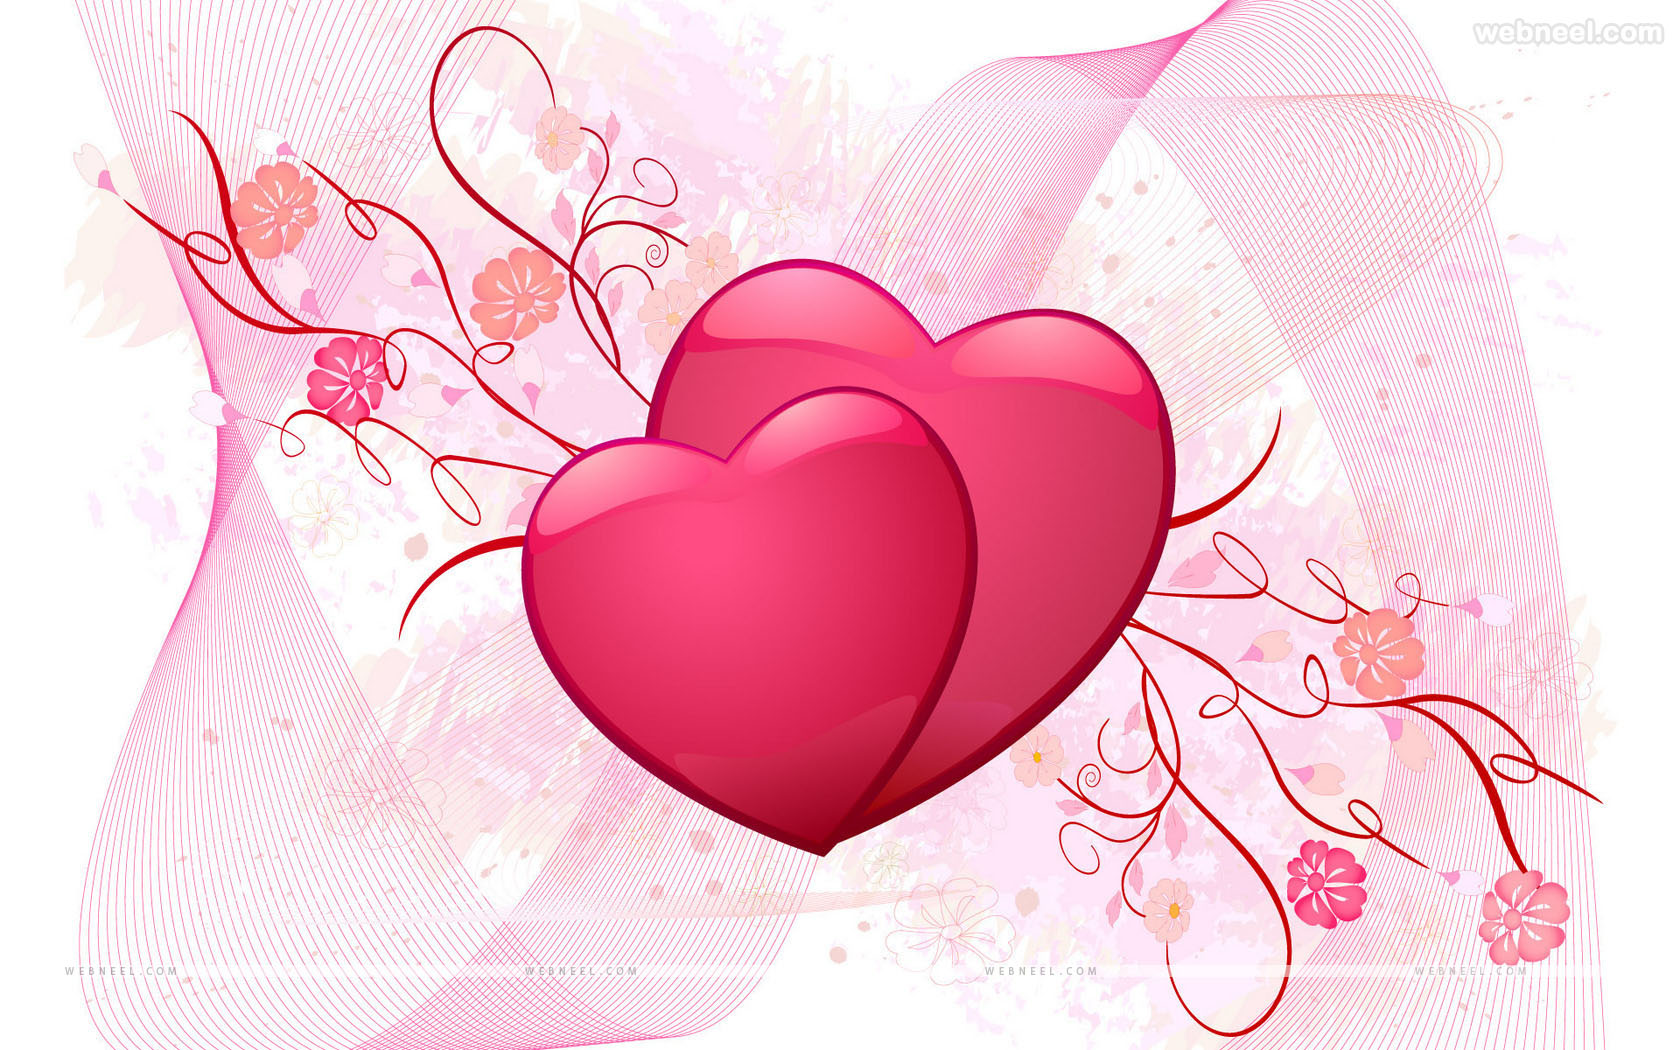 Happy Valentines Day HD Wallpapers Backgrounds Pictures 1680x1050 1680x1050